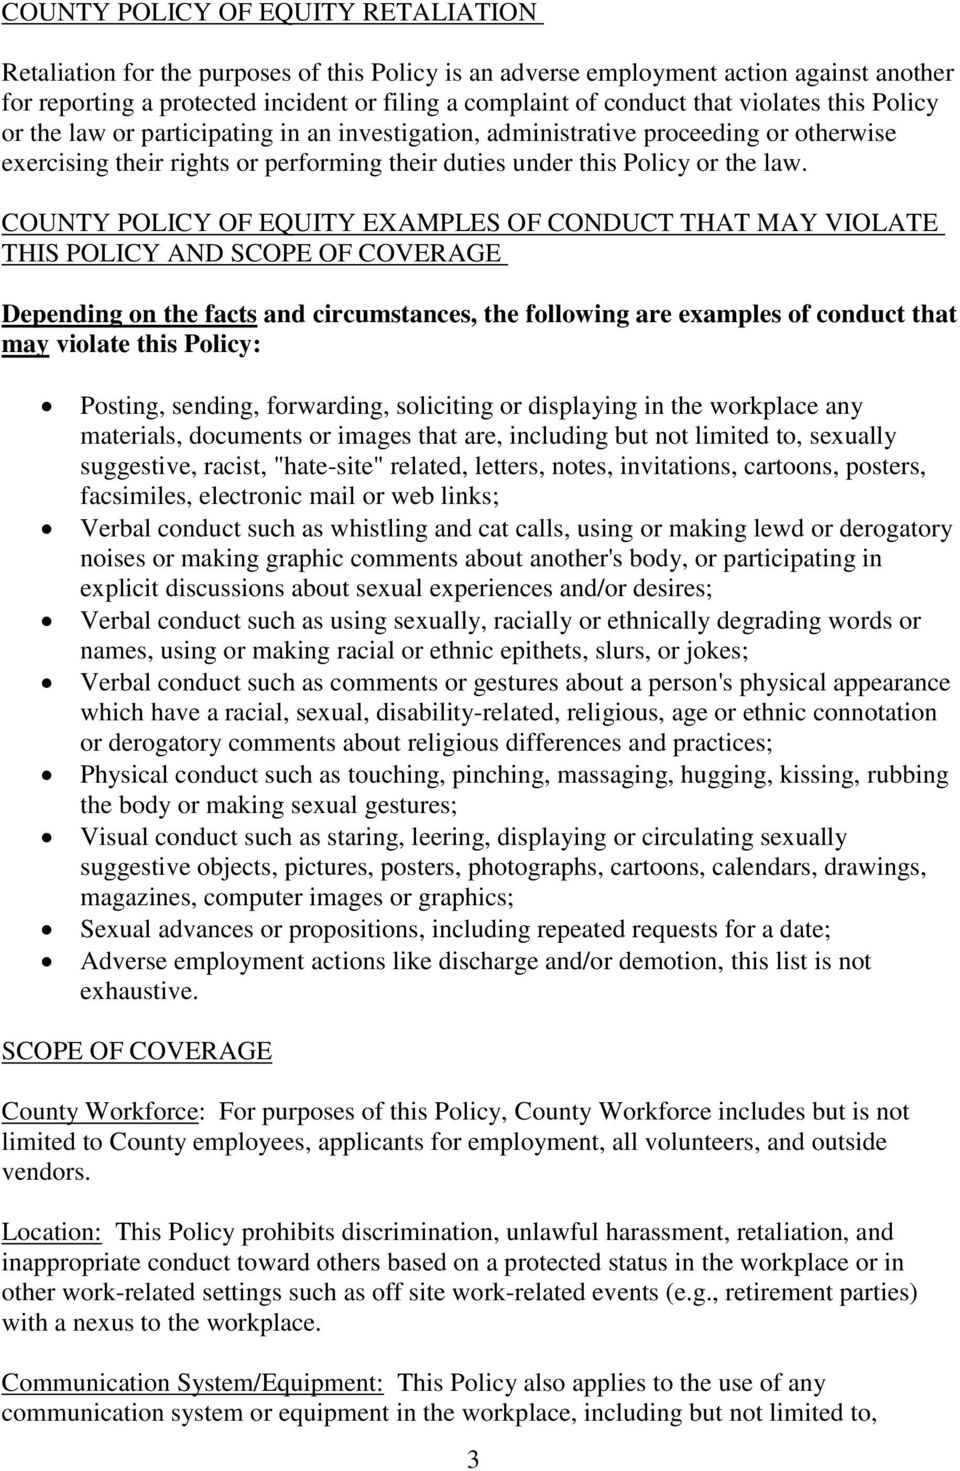 COUNTY POLICY OF EQUITY EXAMPLES OF CONDUCT THAT MAY VIOLATE THIS POLICY AND SCOPE OF COVERAGE Depending on the facts and circumstances, the following are examples of conduct that may violate this